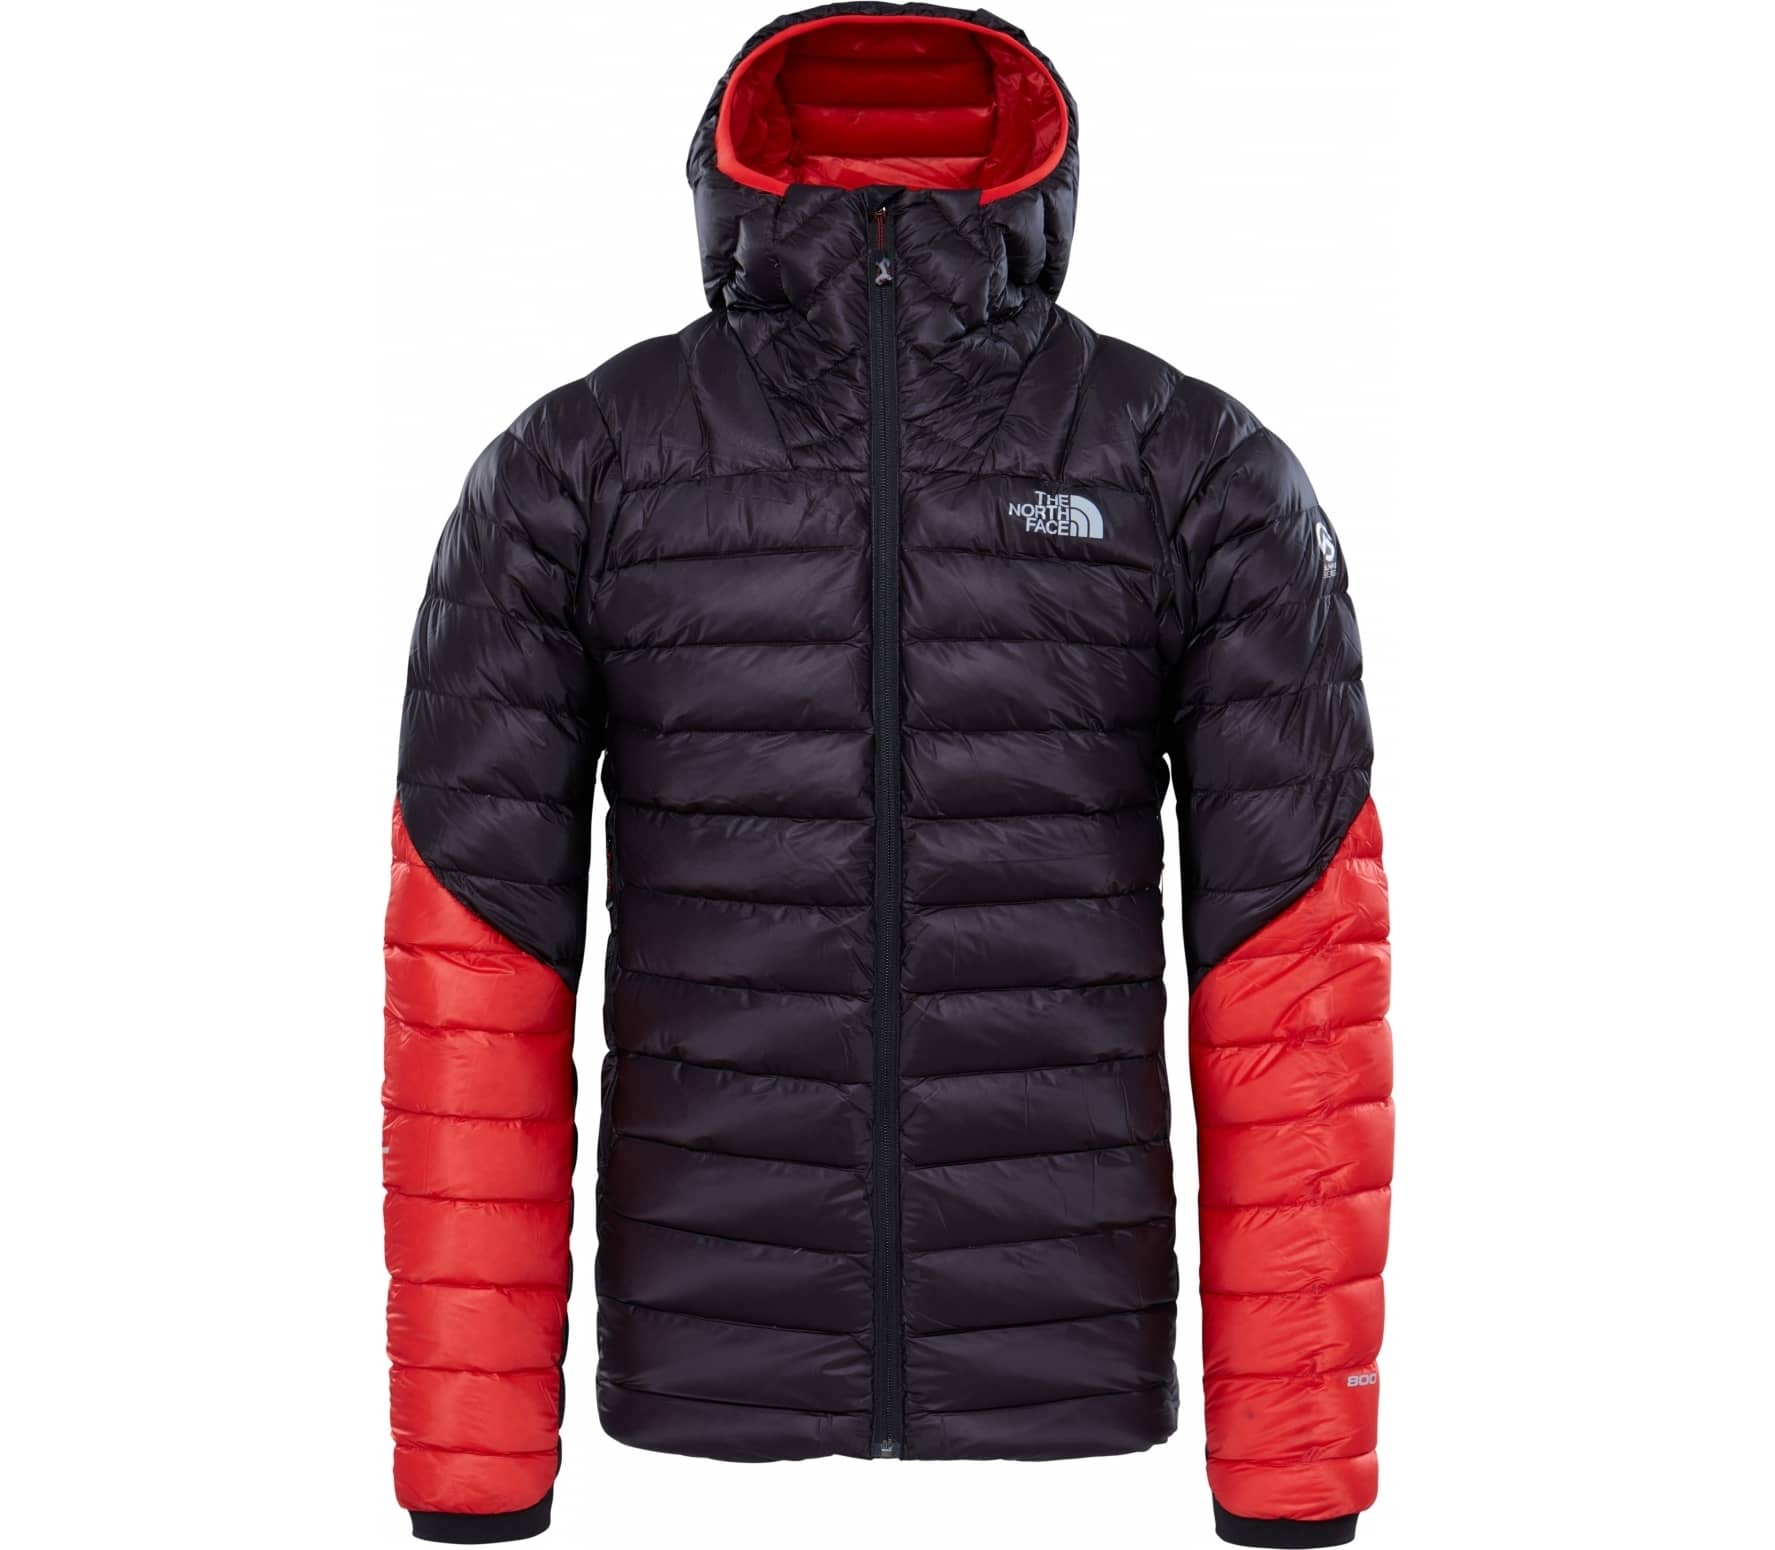 98da2b4b175 The North Face - Summit L3 Down hoodie men s down jacket (black red ...